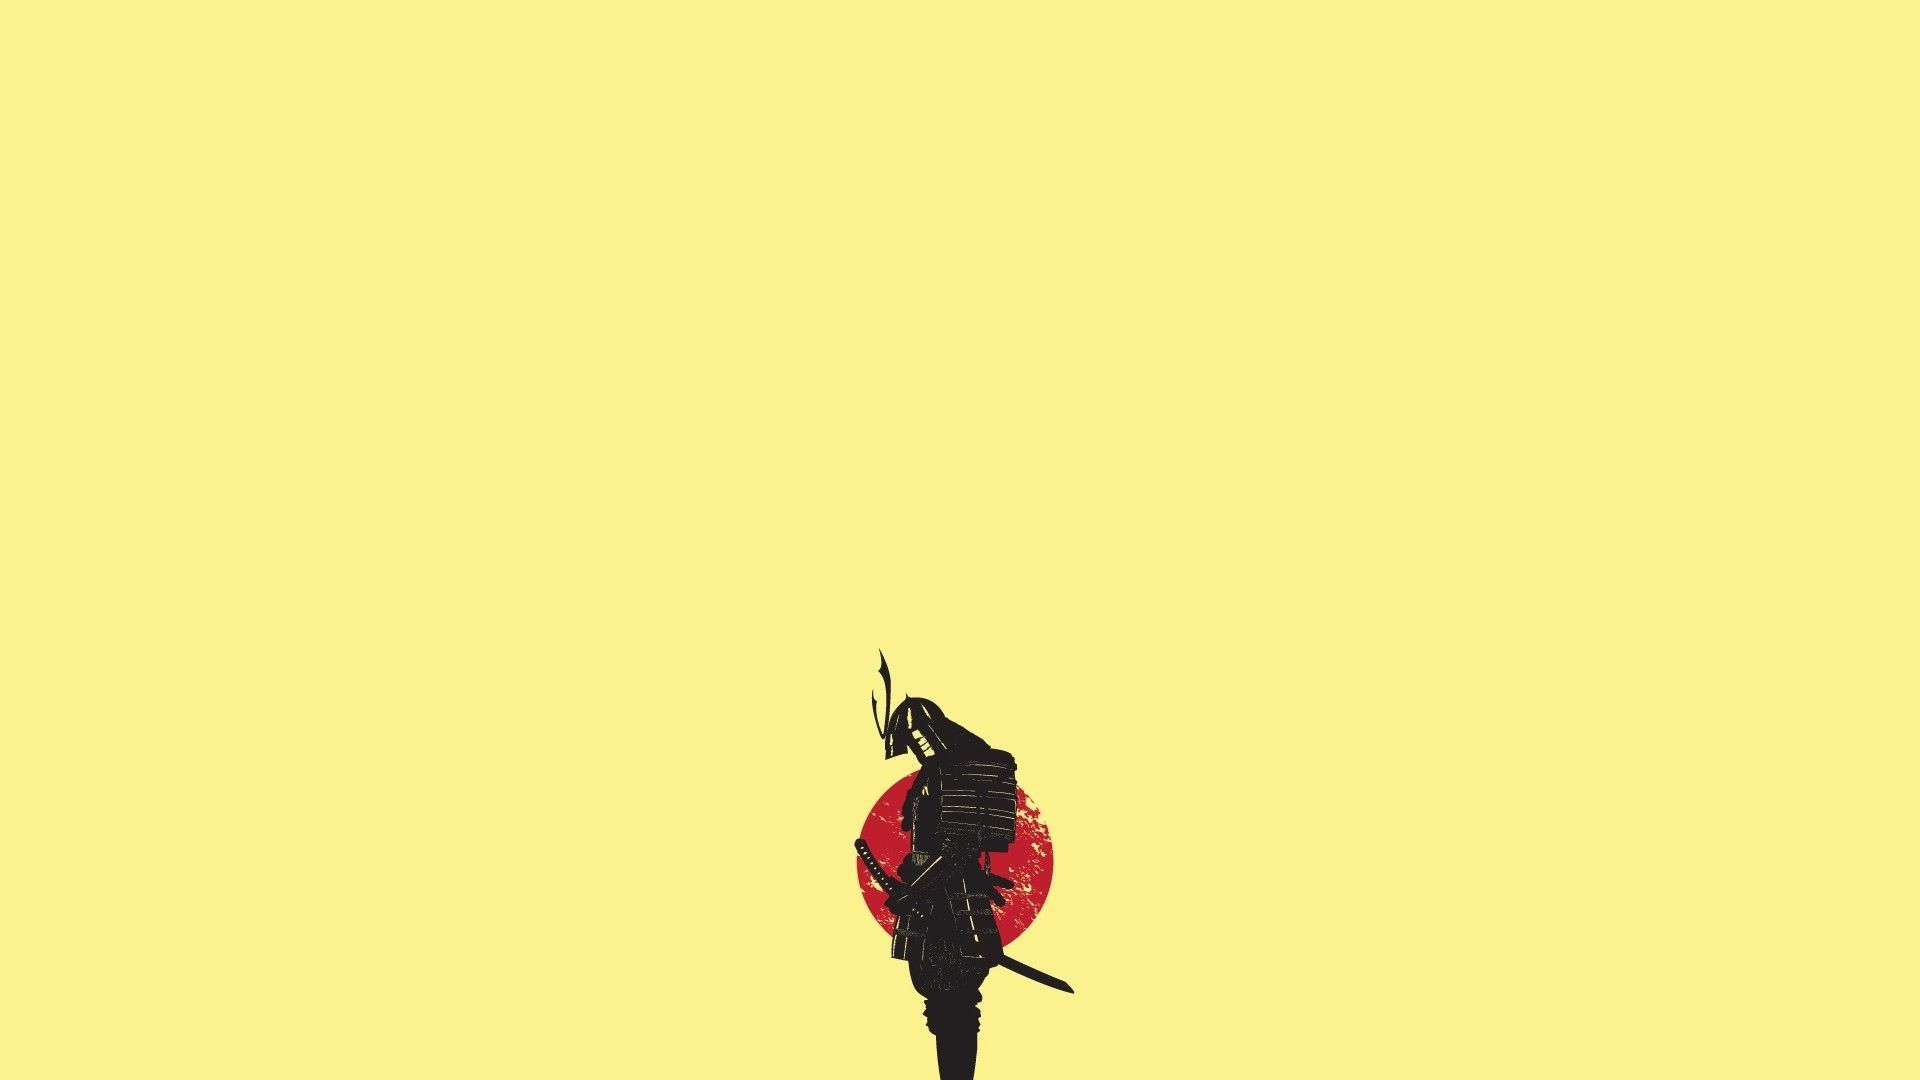 Abstract minimalistic samurai japanese artwork solid for Minimalist art design